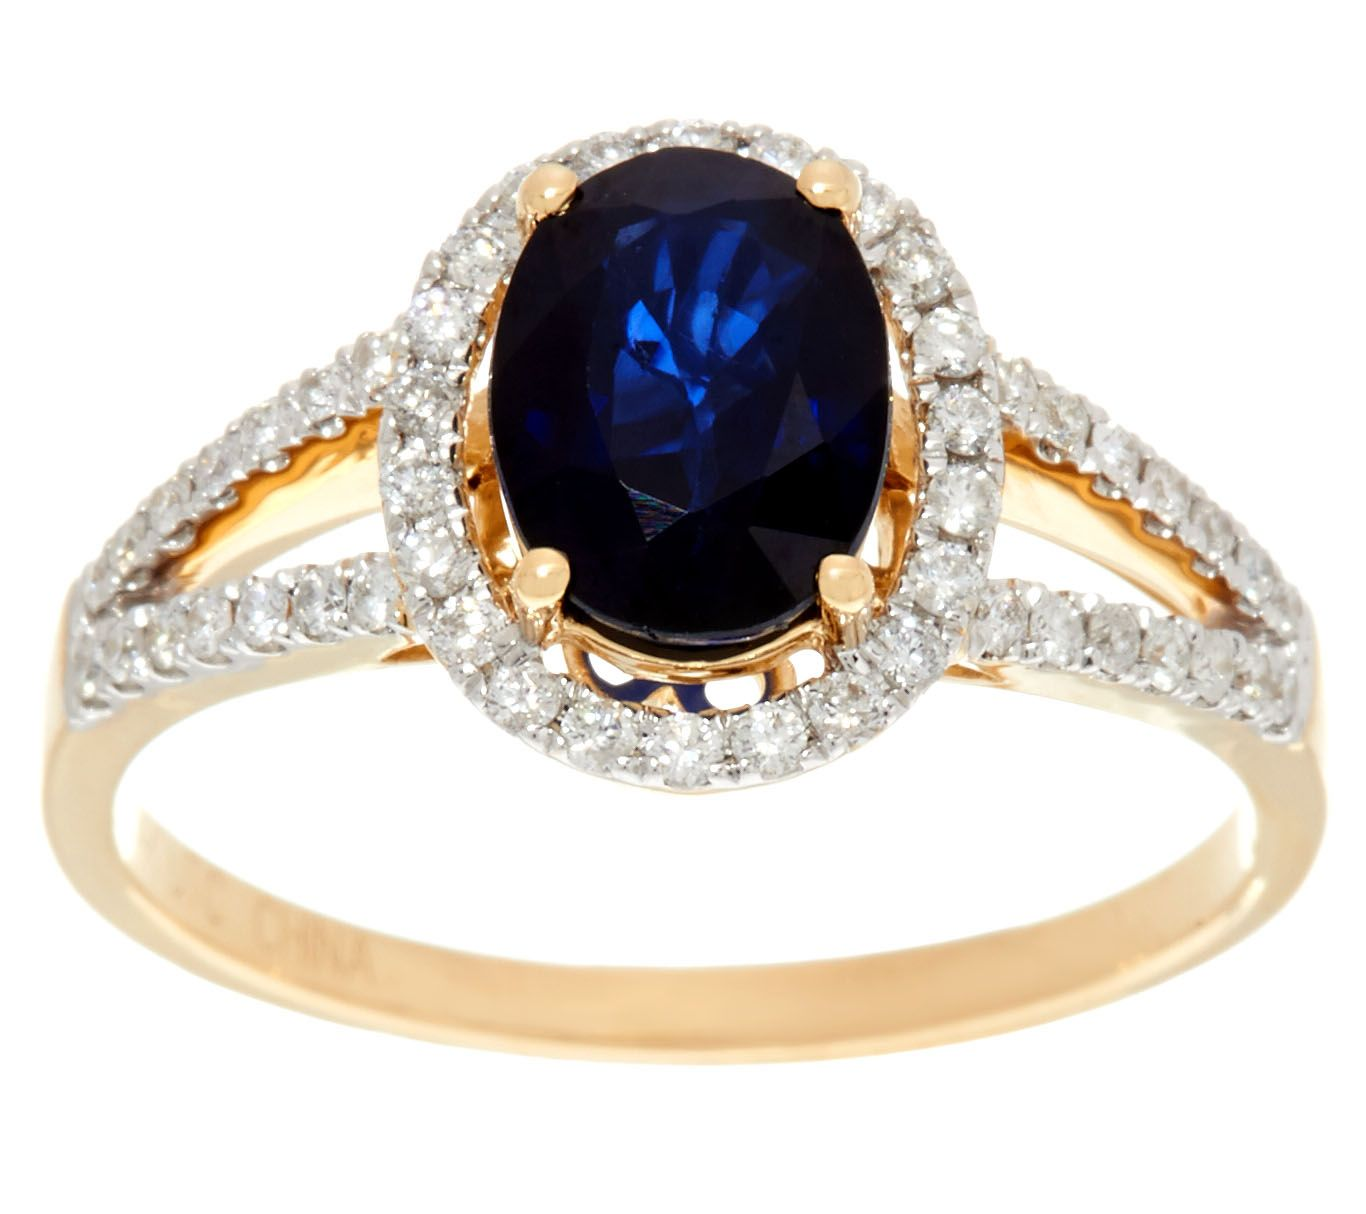 ring diamond gold com precious gemstone product hazy qvc ct